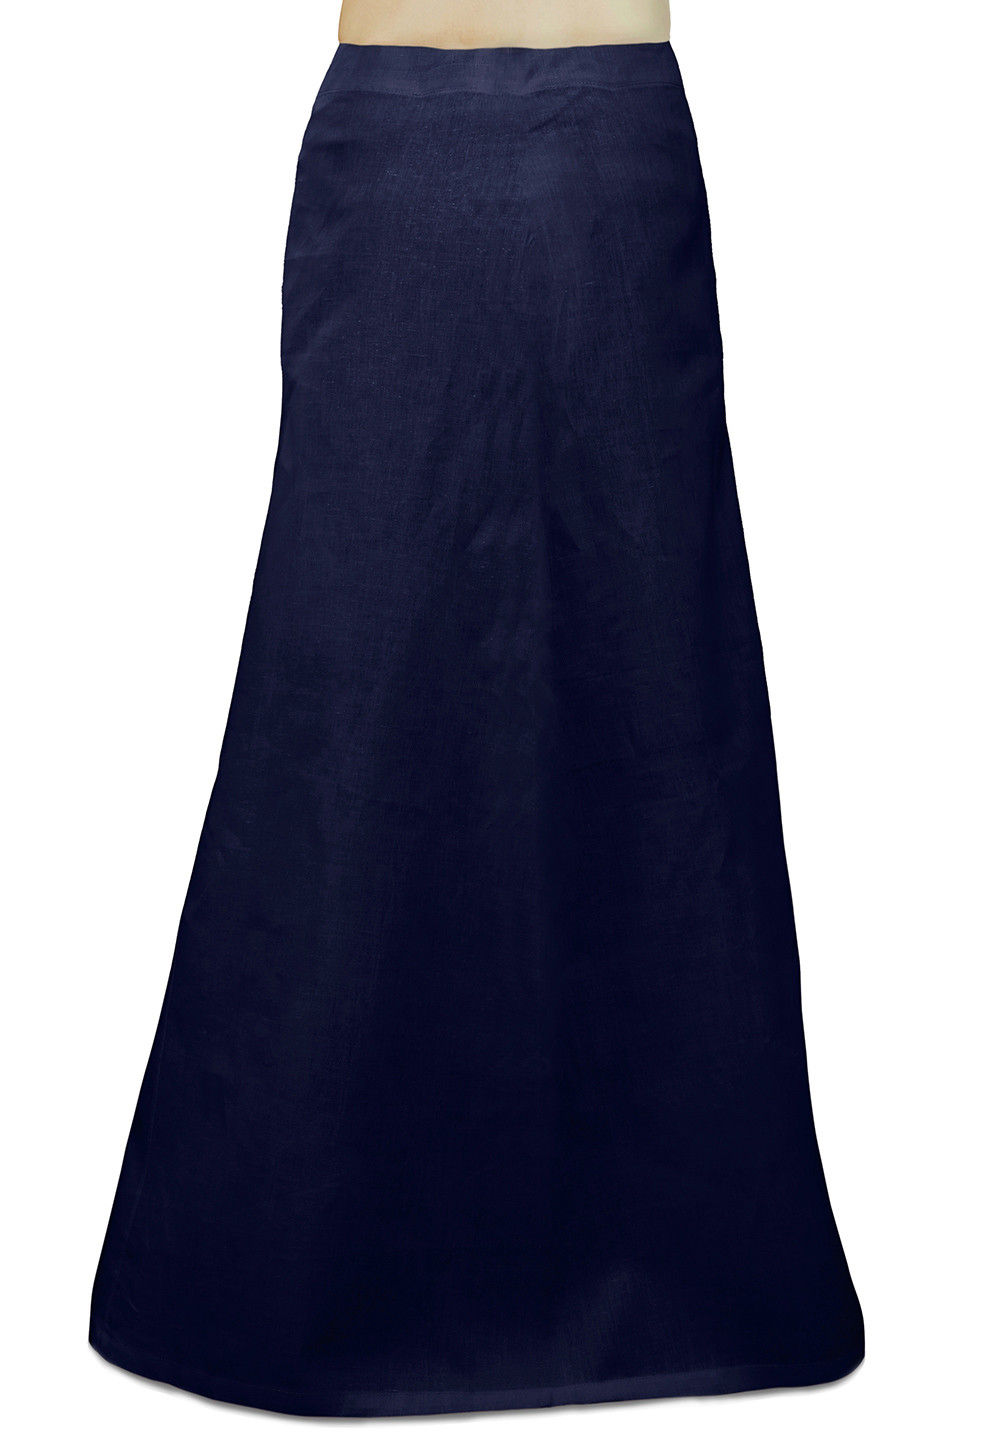 Plain Cotton Readymade Petticoat in Navy Blue